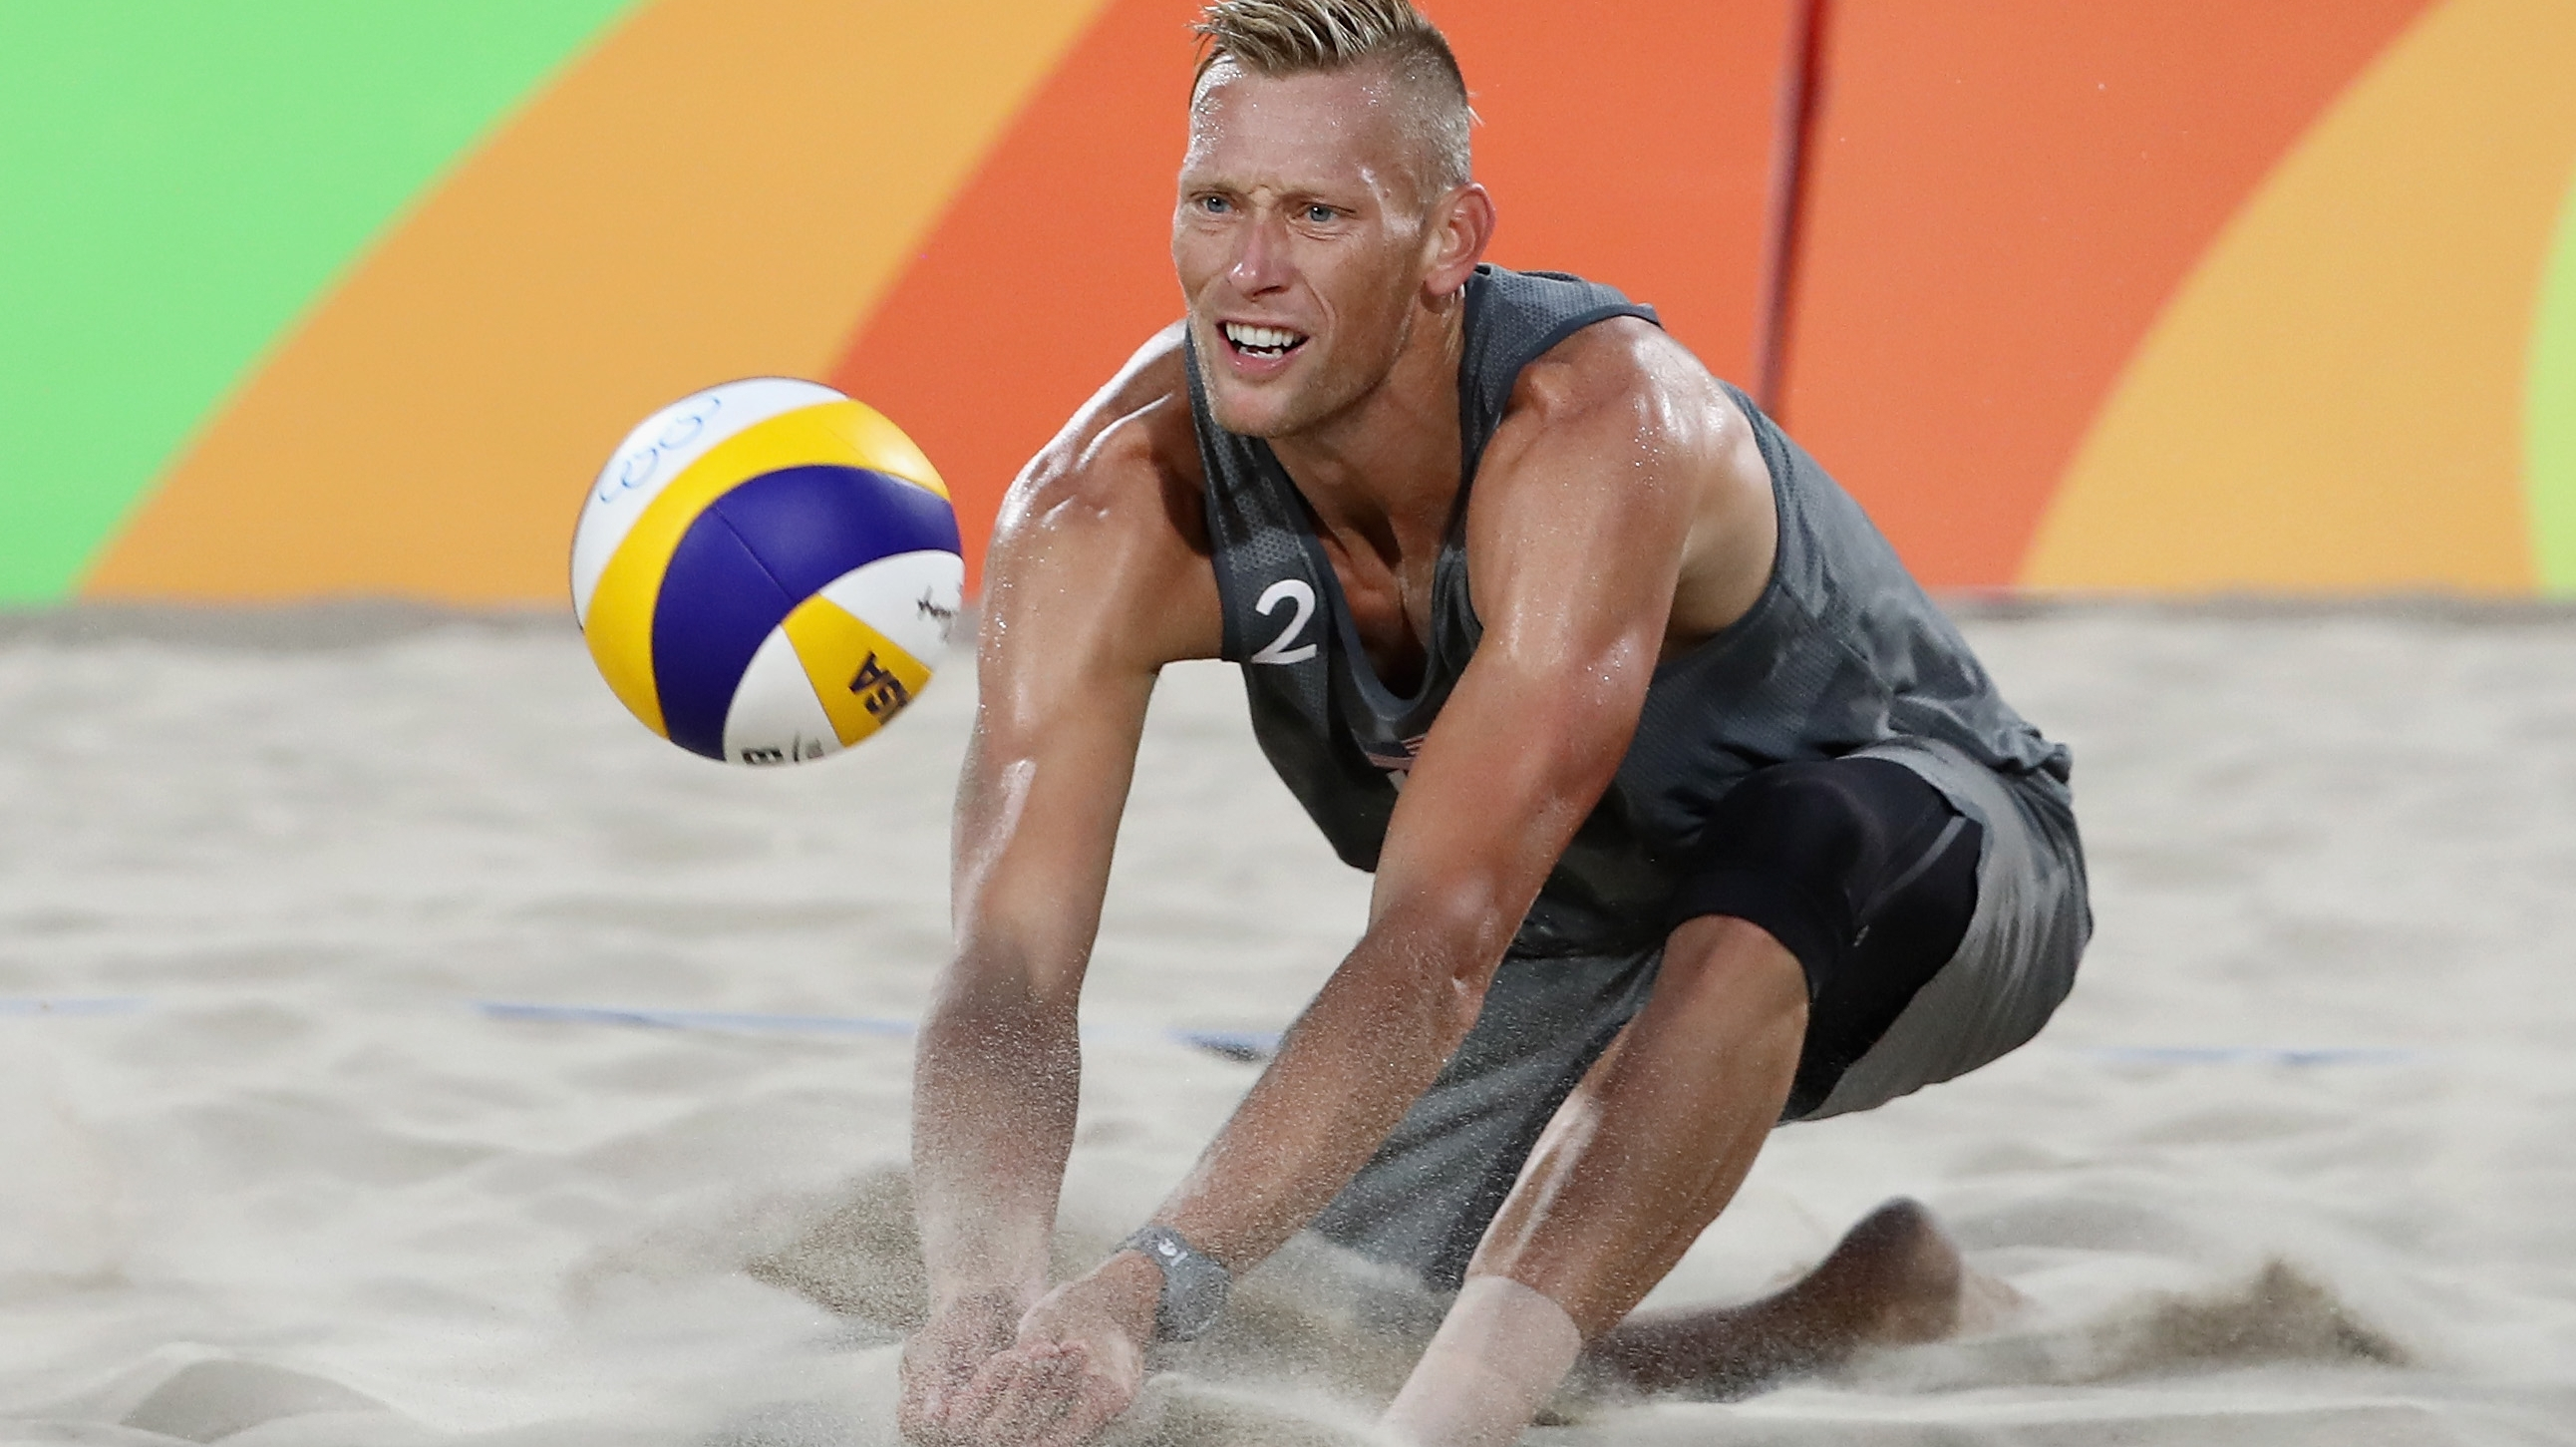 Casey Patterson of United States dives for the ball during the Men's Beach Volleyball preliminary round Pool F match against Robin Seidl and Alexander Huber of Austria on Day 3 of the Rio 2016 Olympic Games at the Beach Volleyball Arena on August 8, 2016.